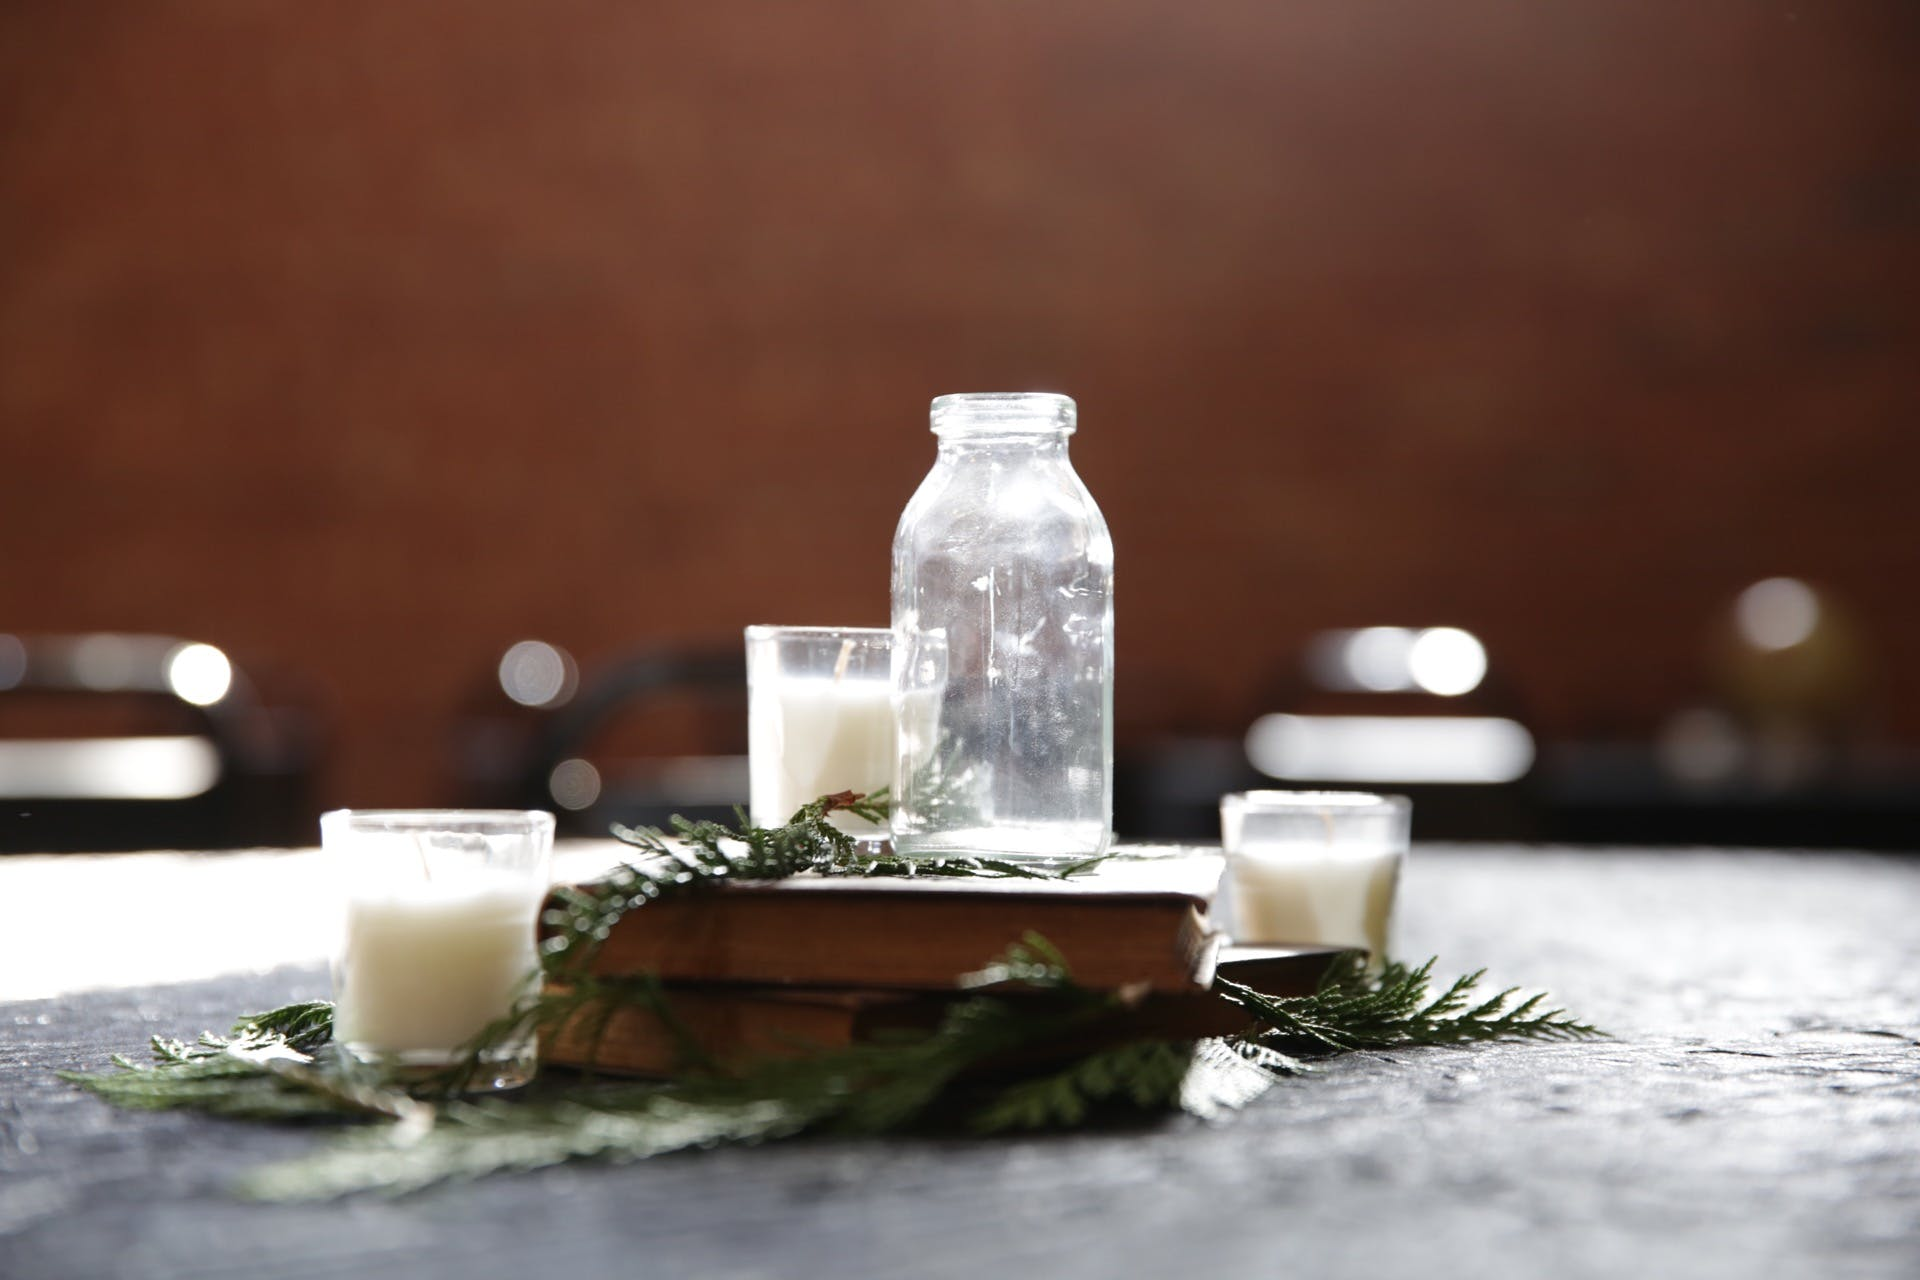 Clear Glass Bottle Beside Candle Holder